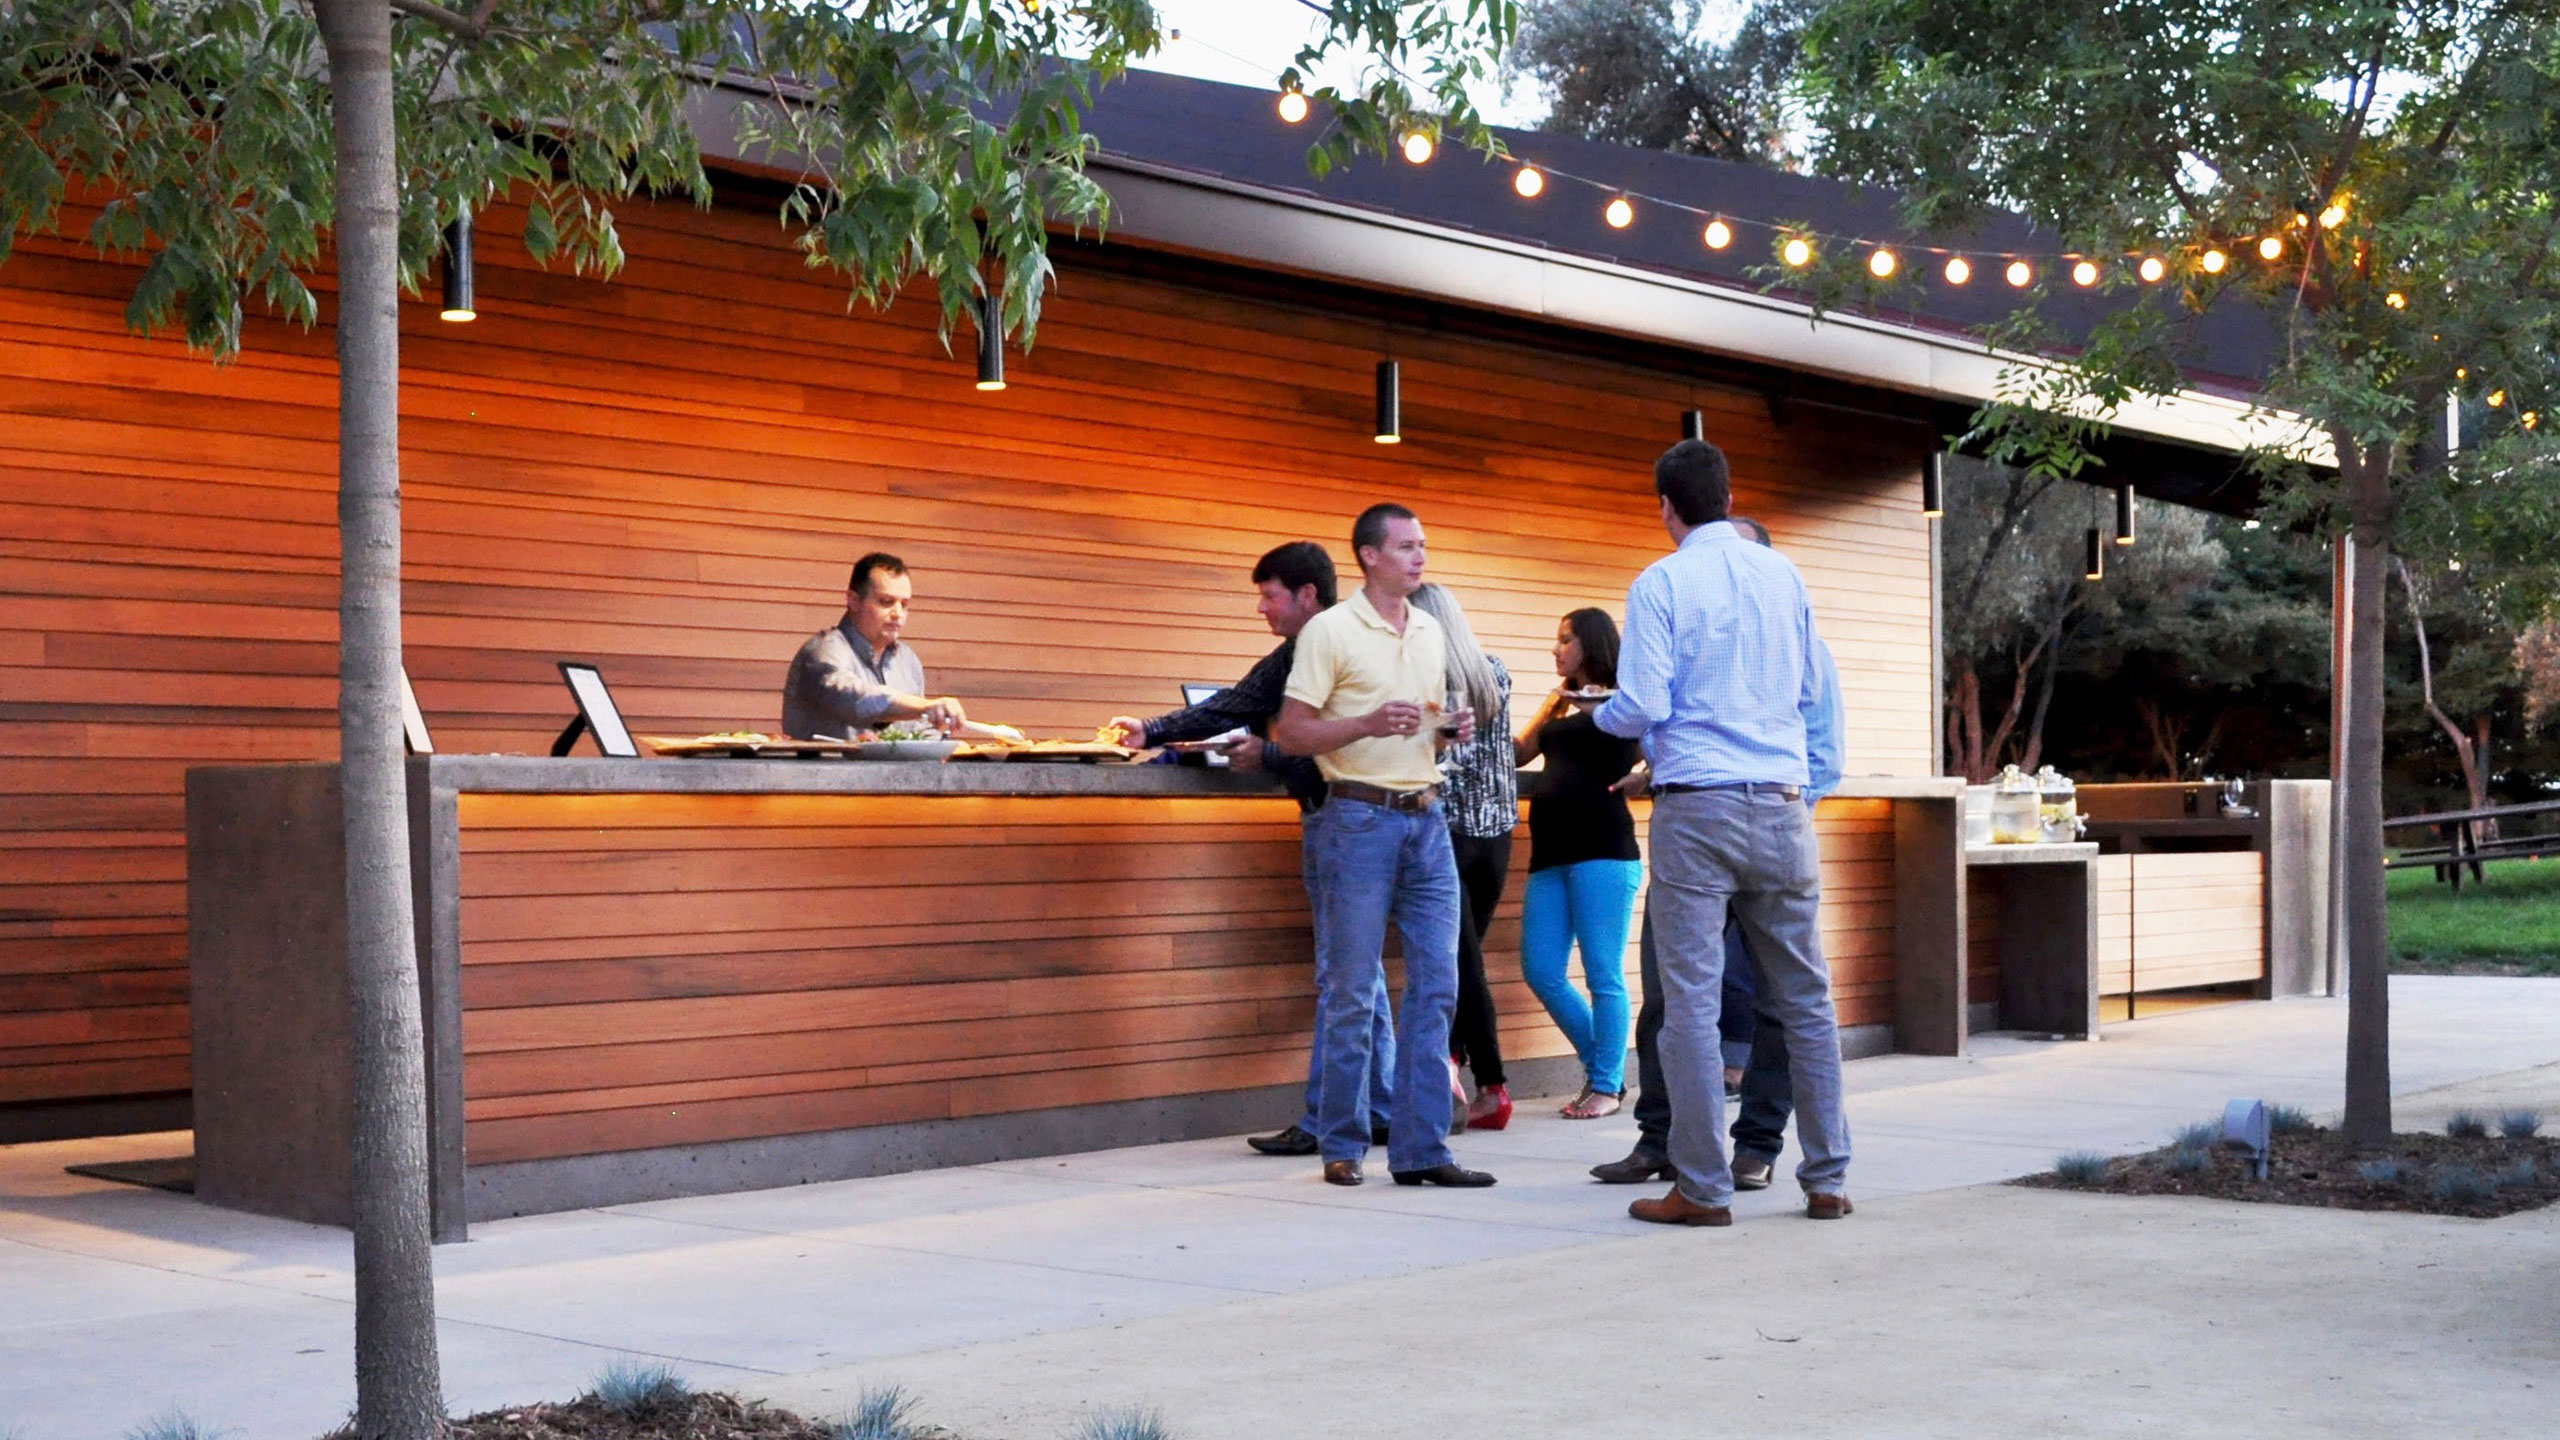 Winery-Architecture-Healdsburg-outdoor-bar-reclaimed-wood